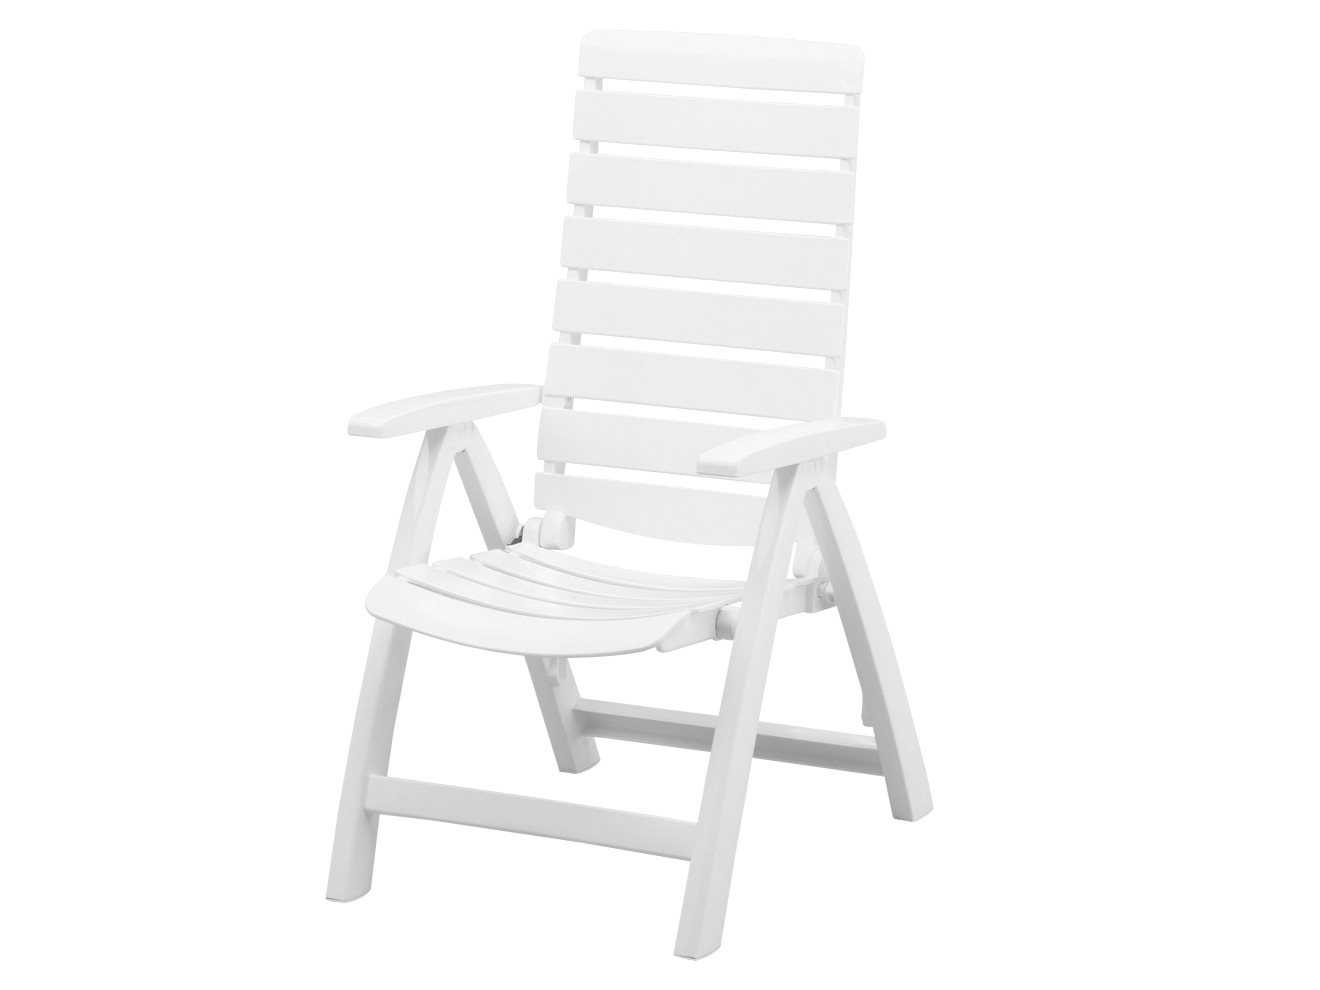 high end folding lawn chairs mid century rocking chair uk kettler rimini multi position back arm kr1494000